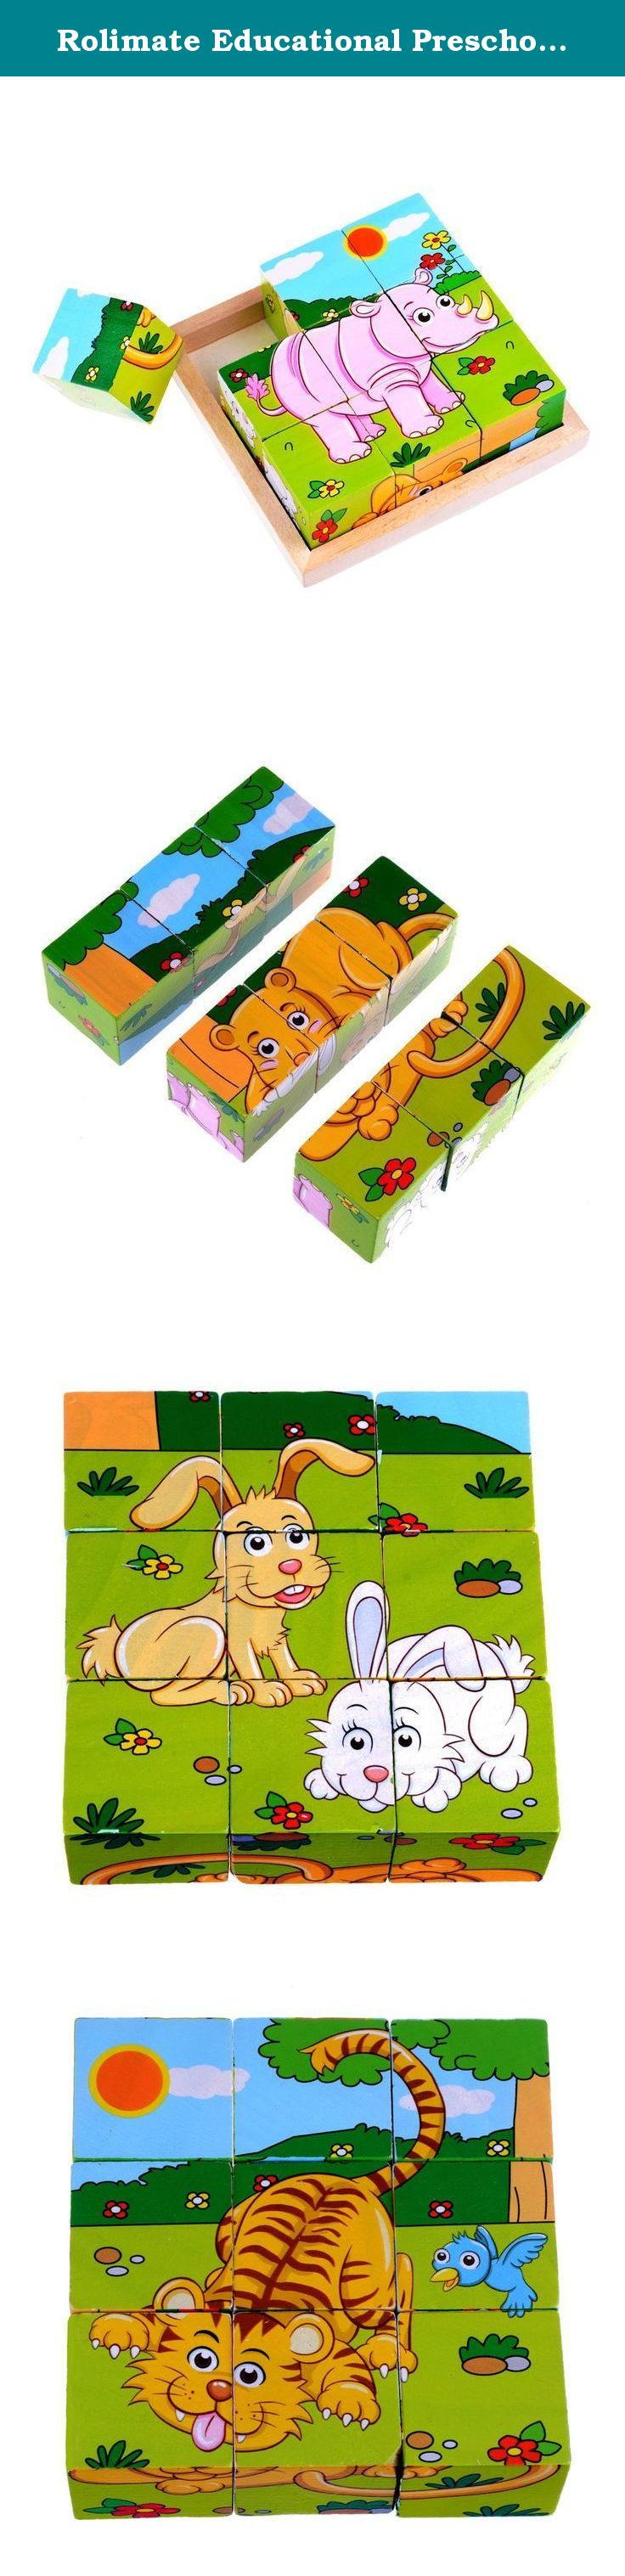 Lion toys for kids  Rolimate Educational Preschool Wooden Cube Block Jigsaw Puzzles